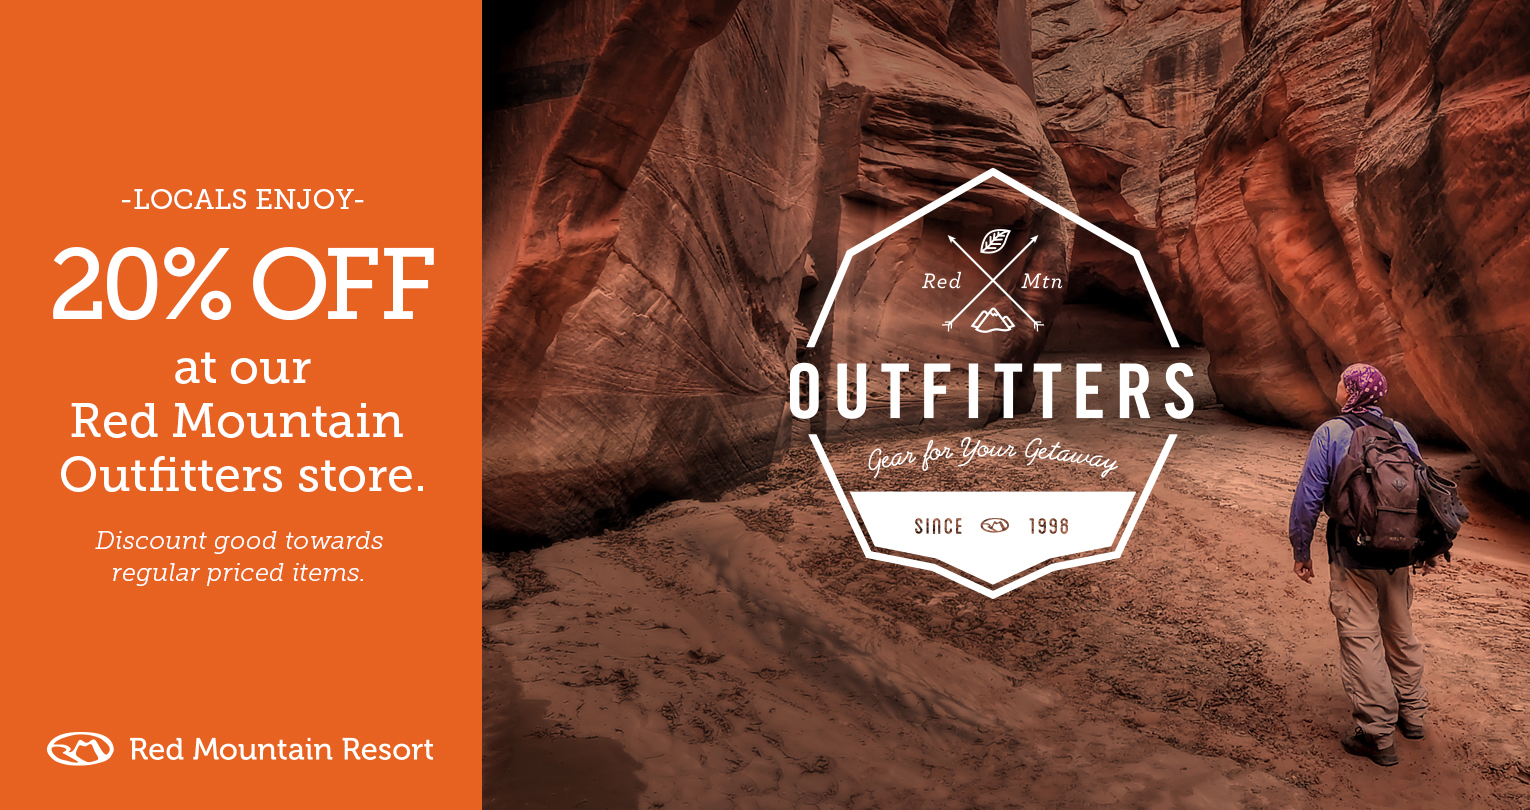 Red Mountain Outfitters 20% off coupon | Graphic provided by Red Mountain Resort, St. George News